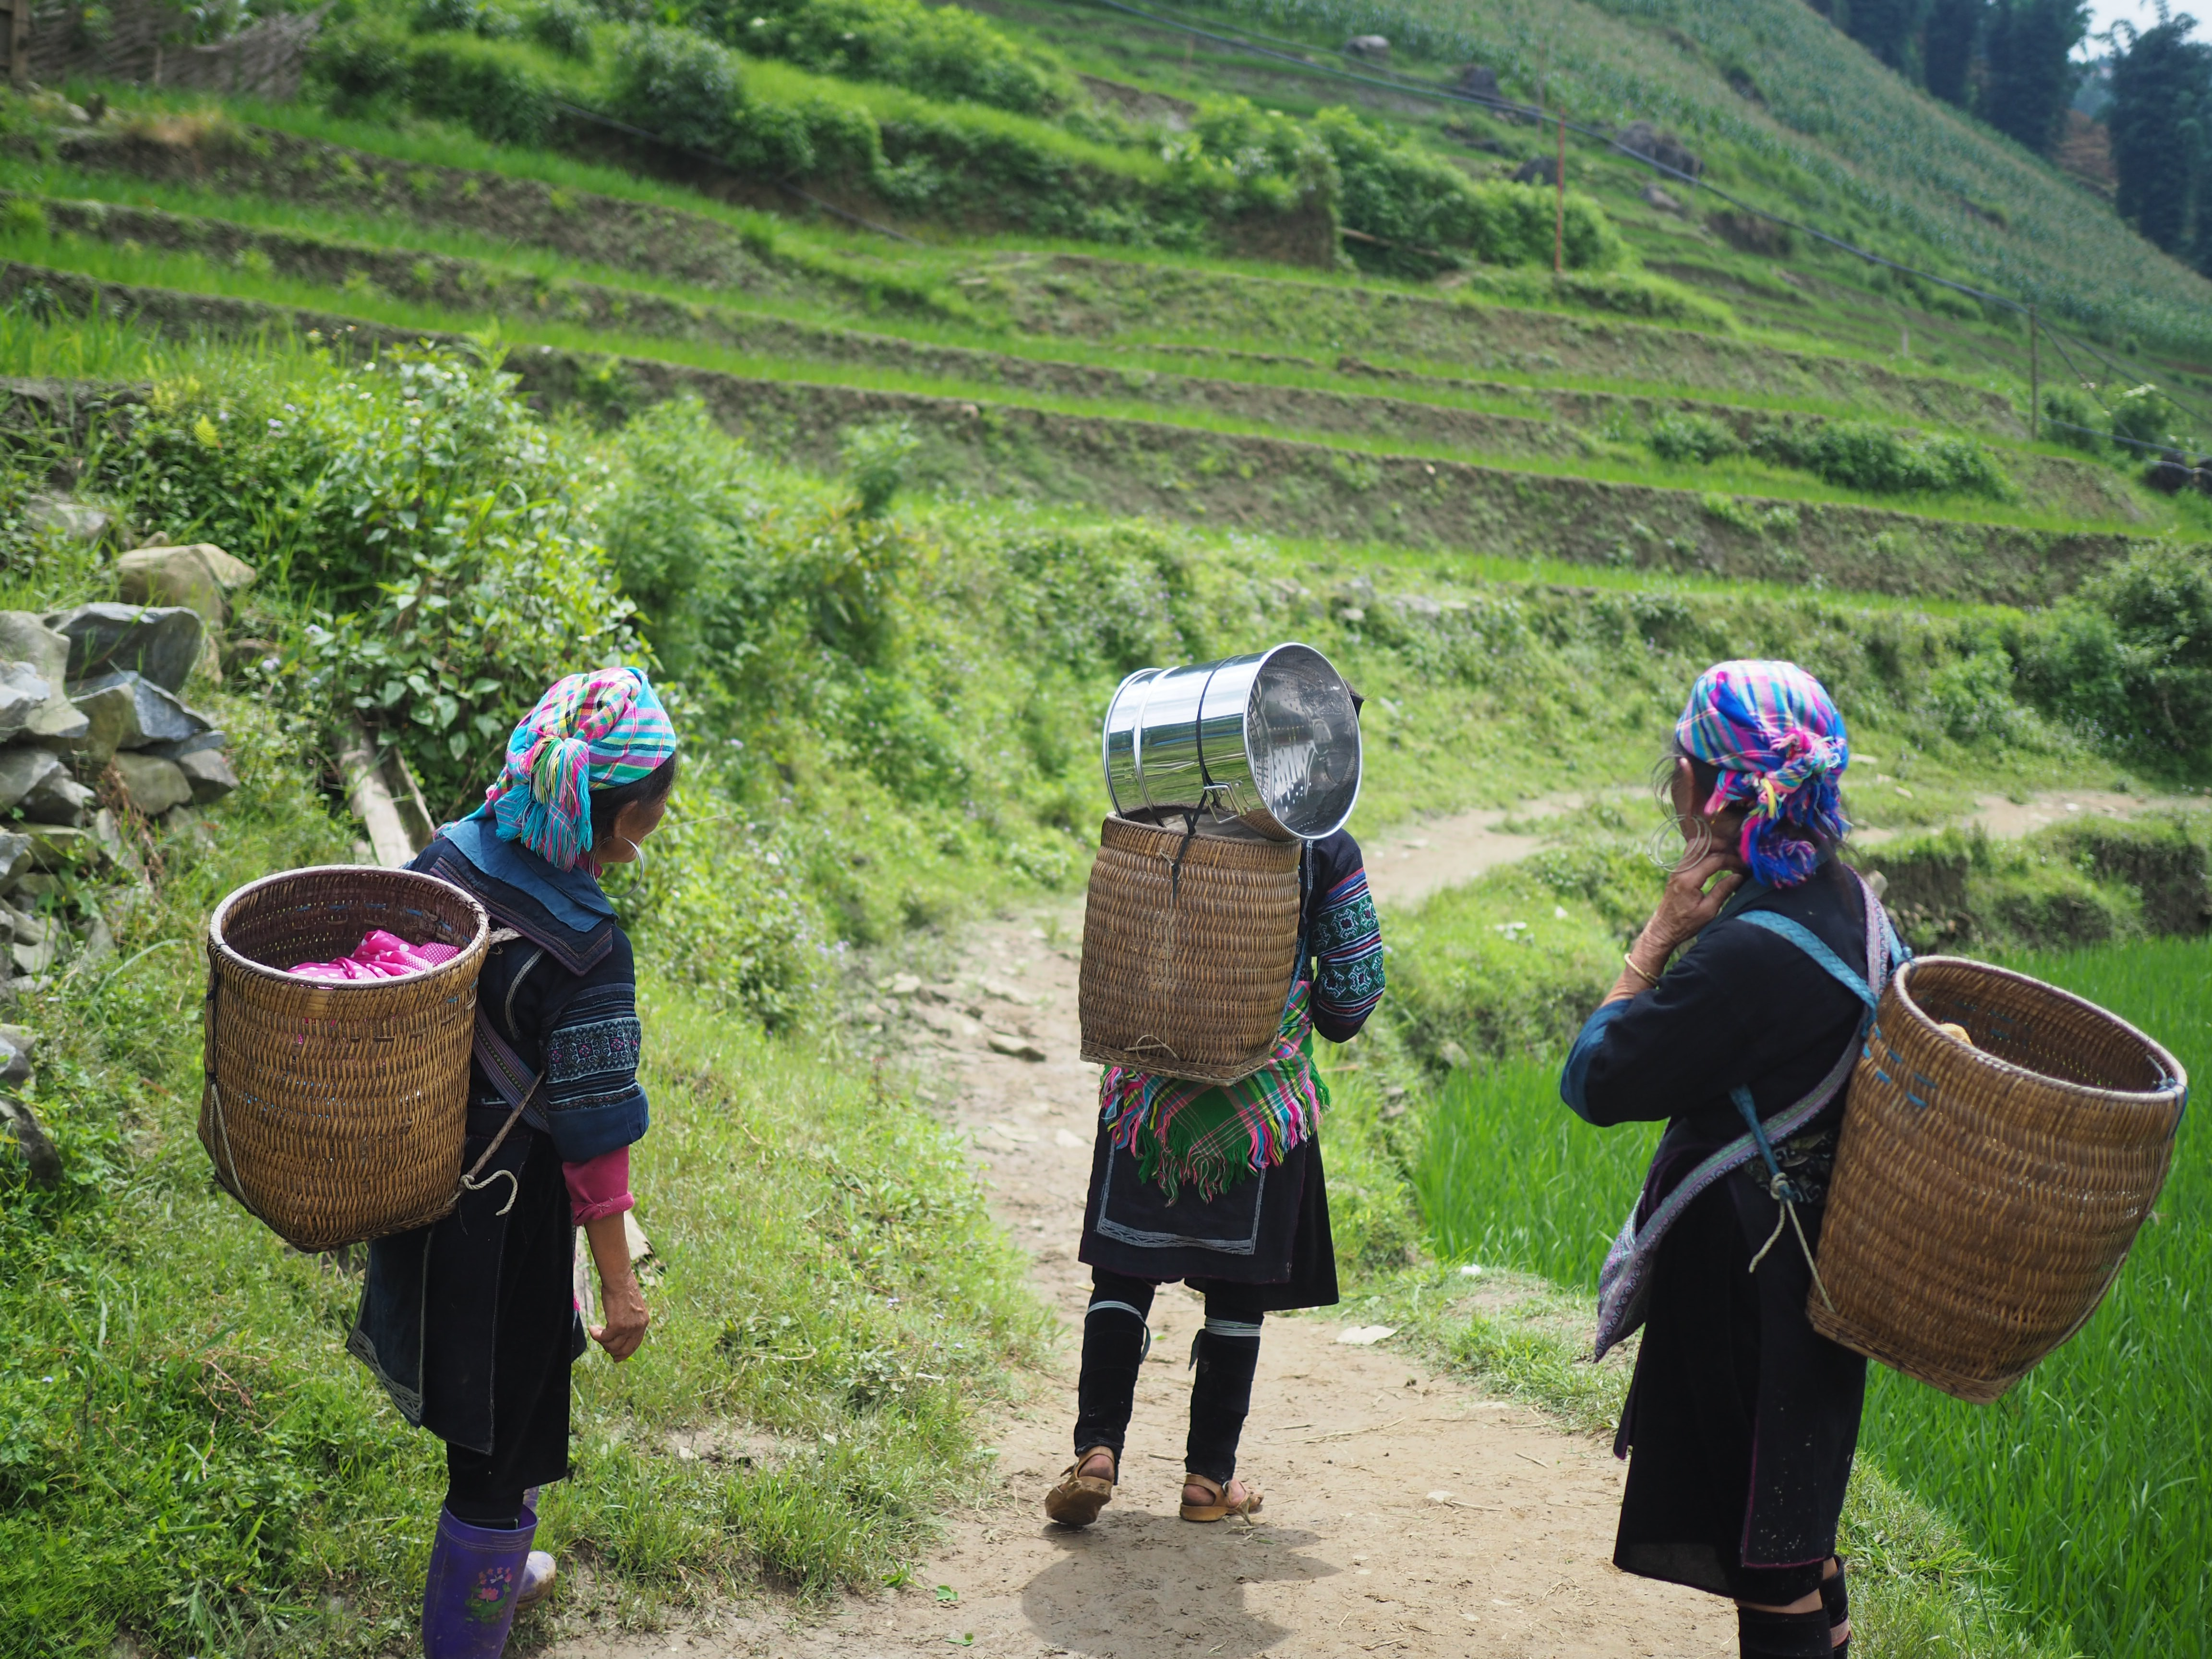 Three people carry baskets of goods on their backs on a rural pathway in Sa Pa